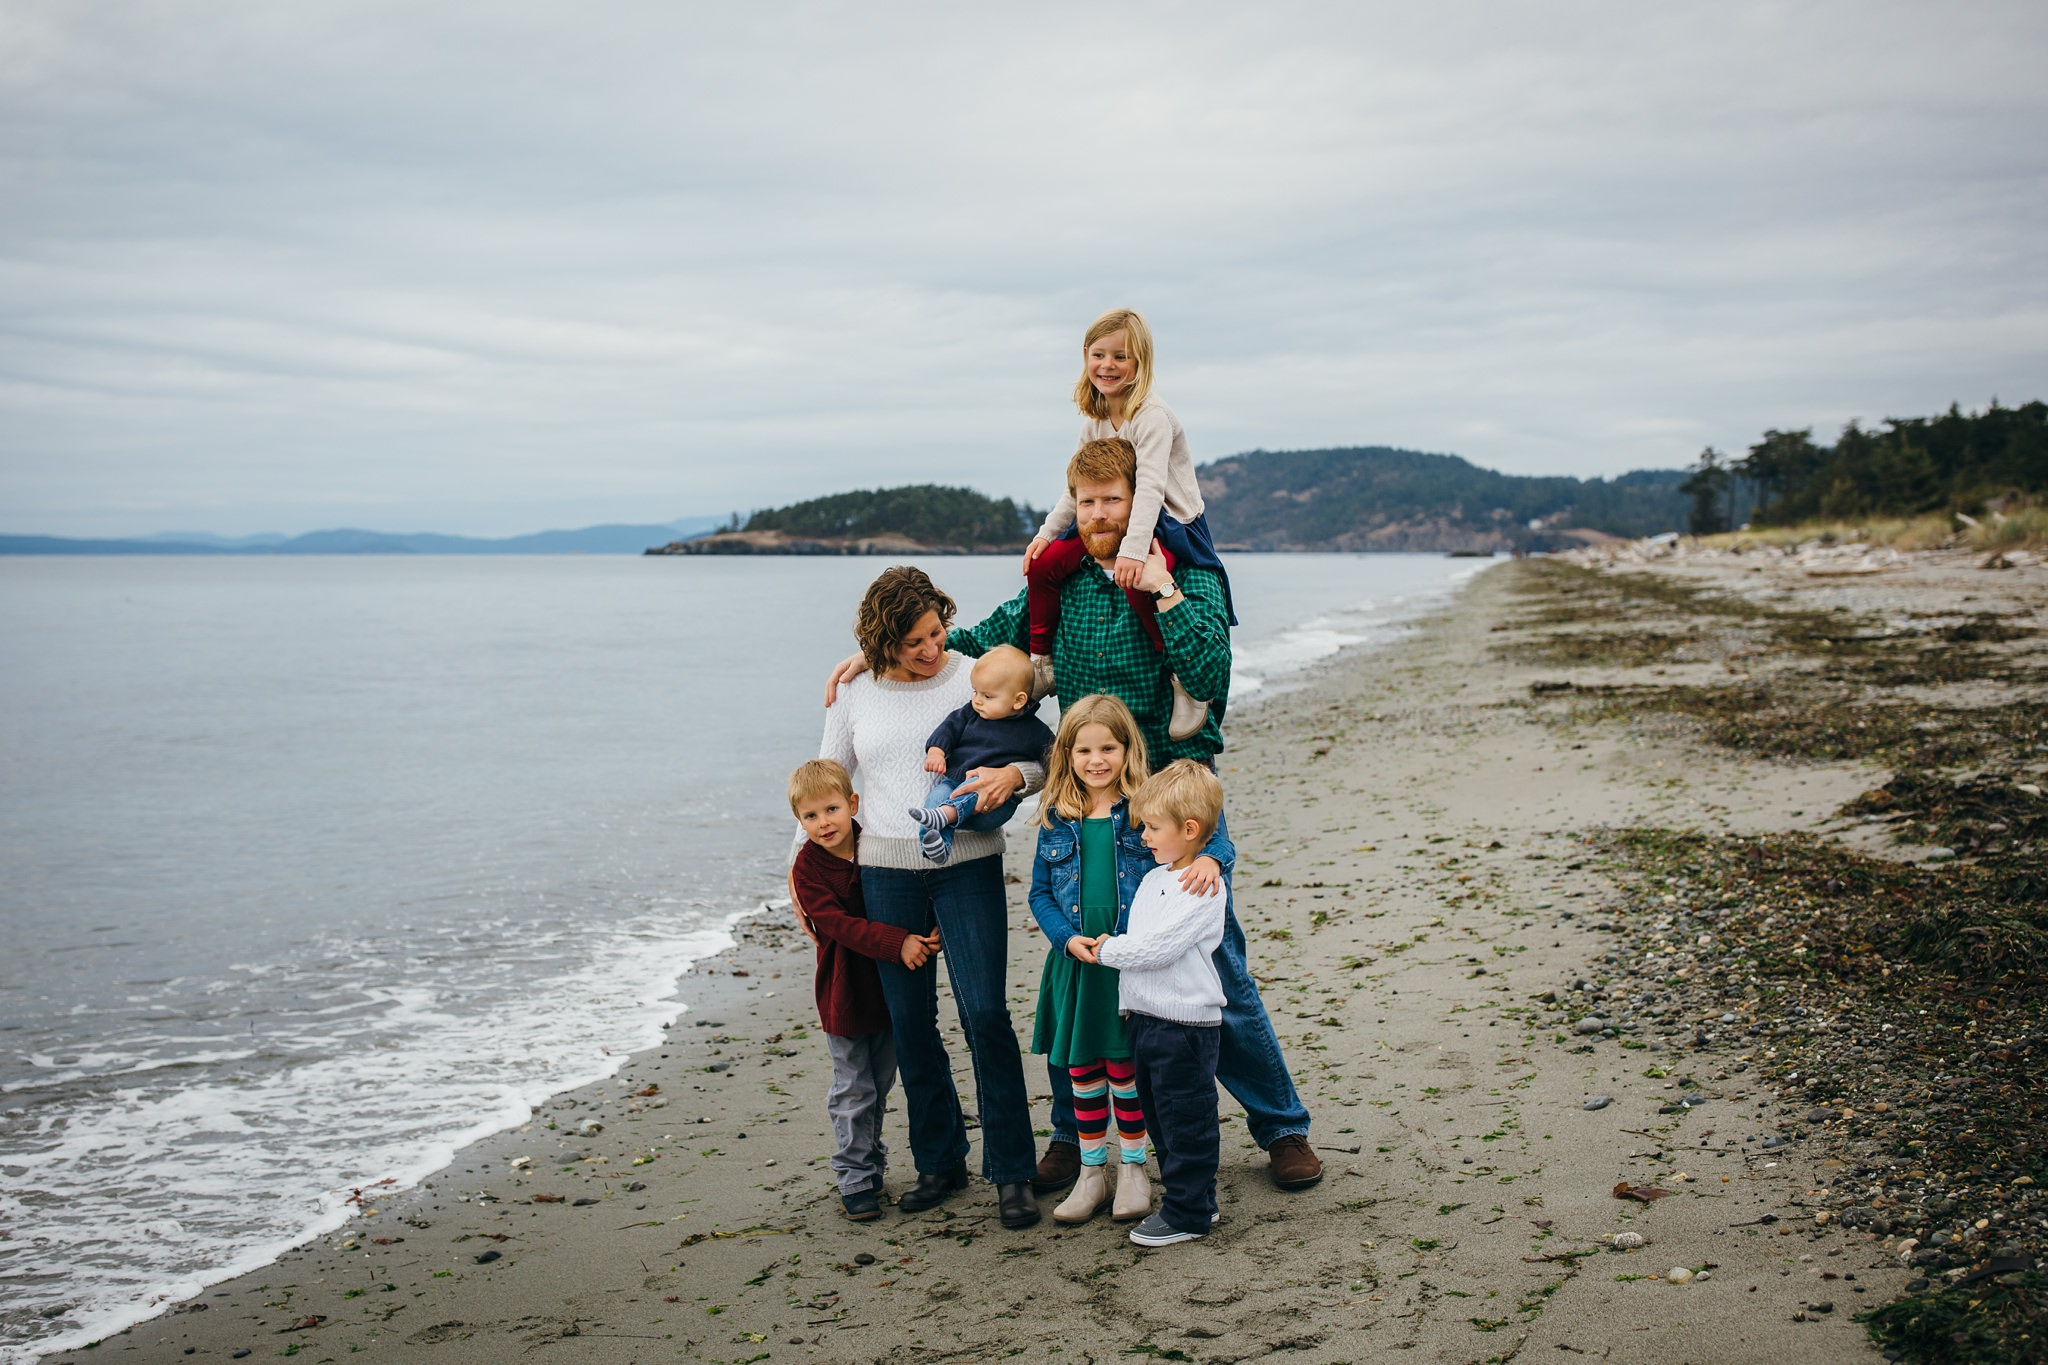 kara chappell whidbey island family photography family of seven takes pictures on washington beach